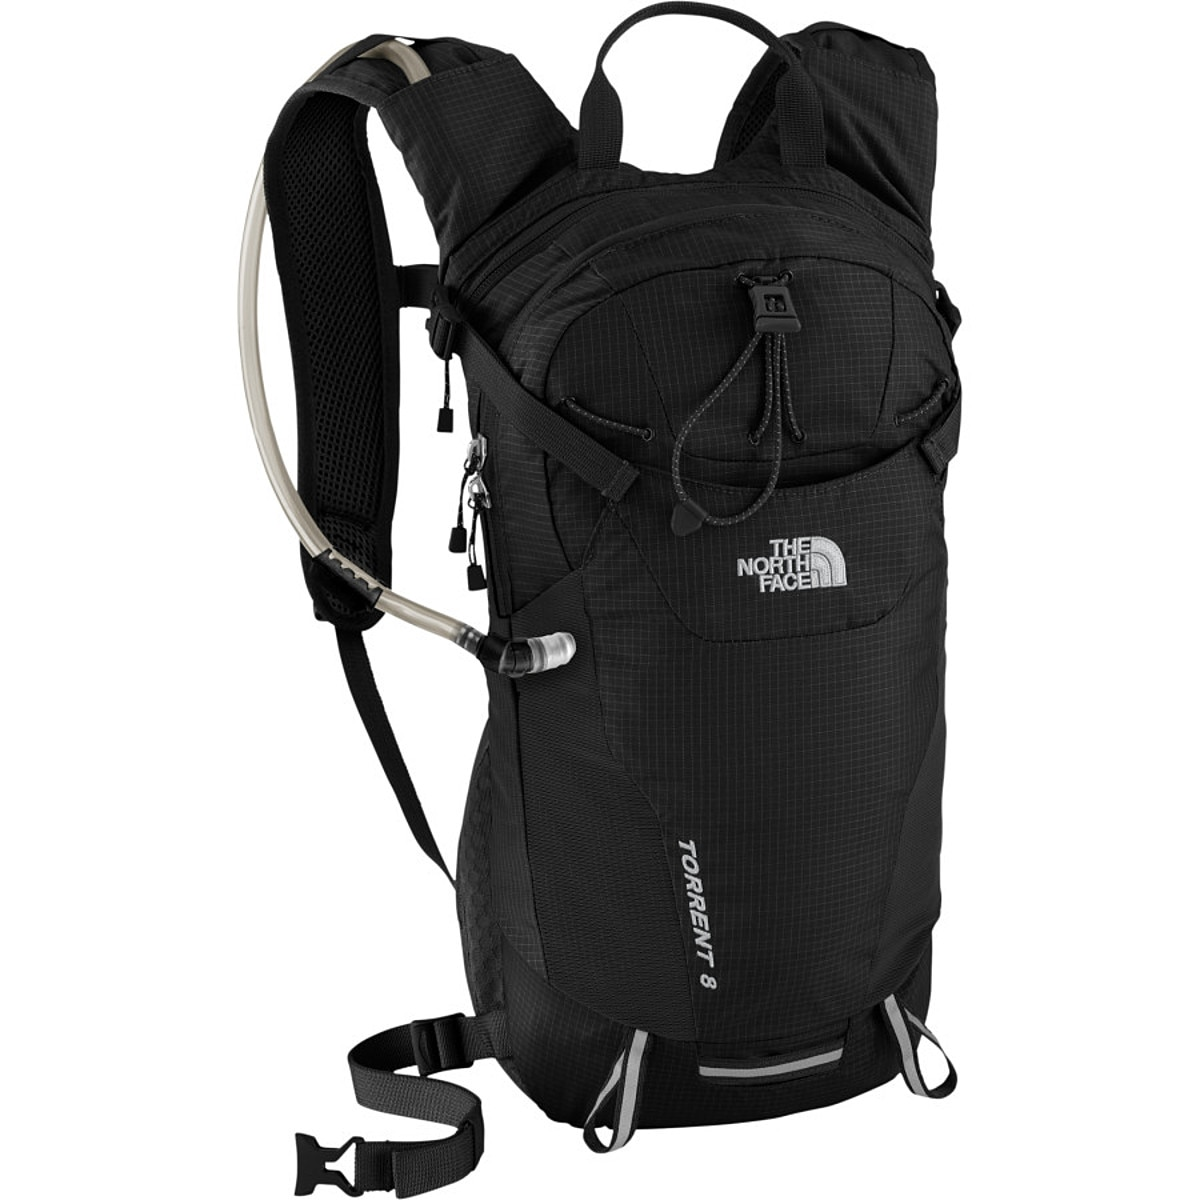 The North Face Torrent 8 Hydration